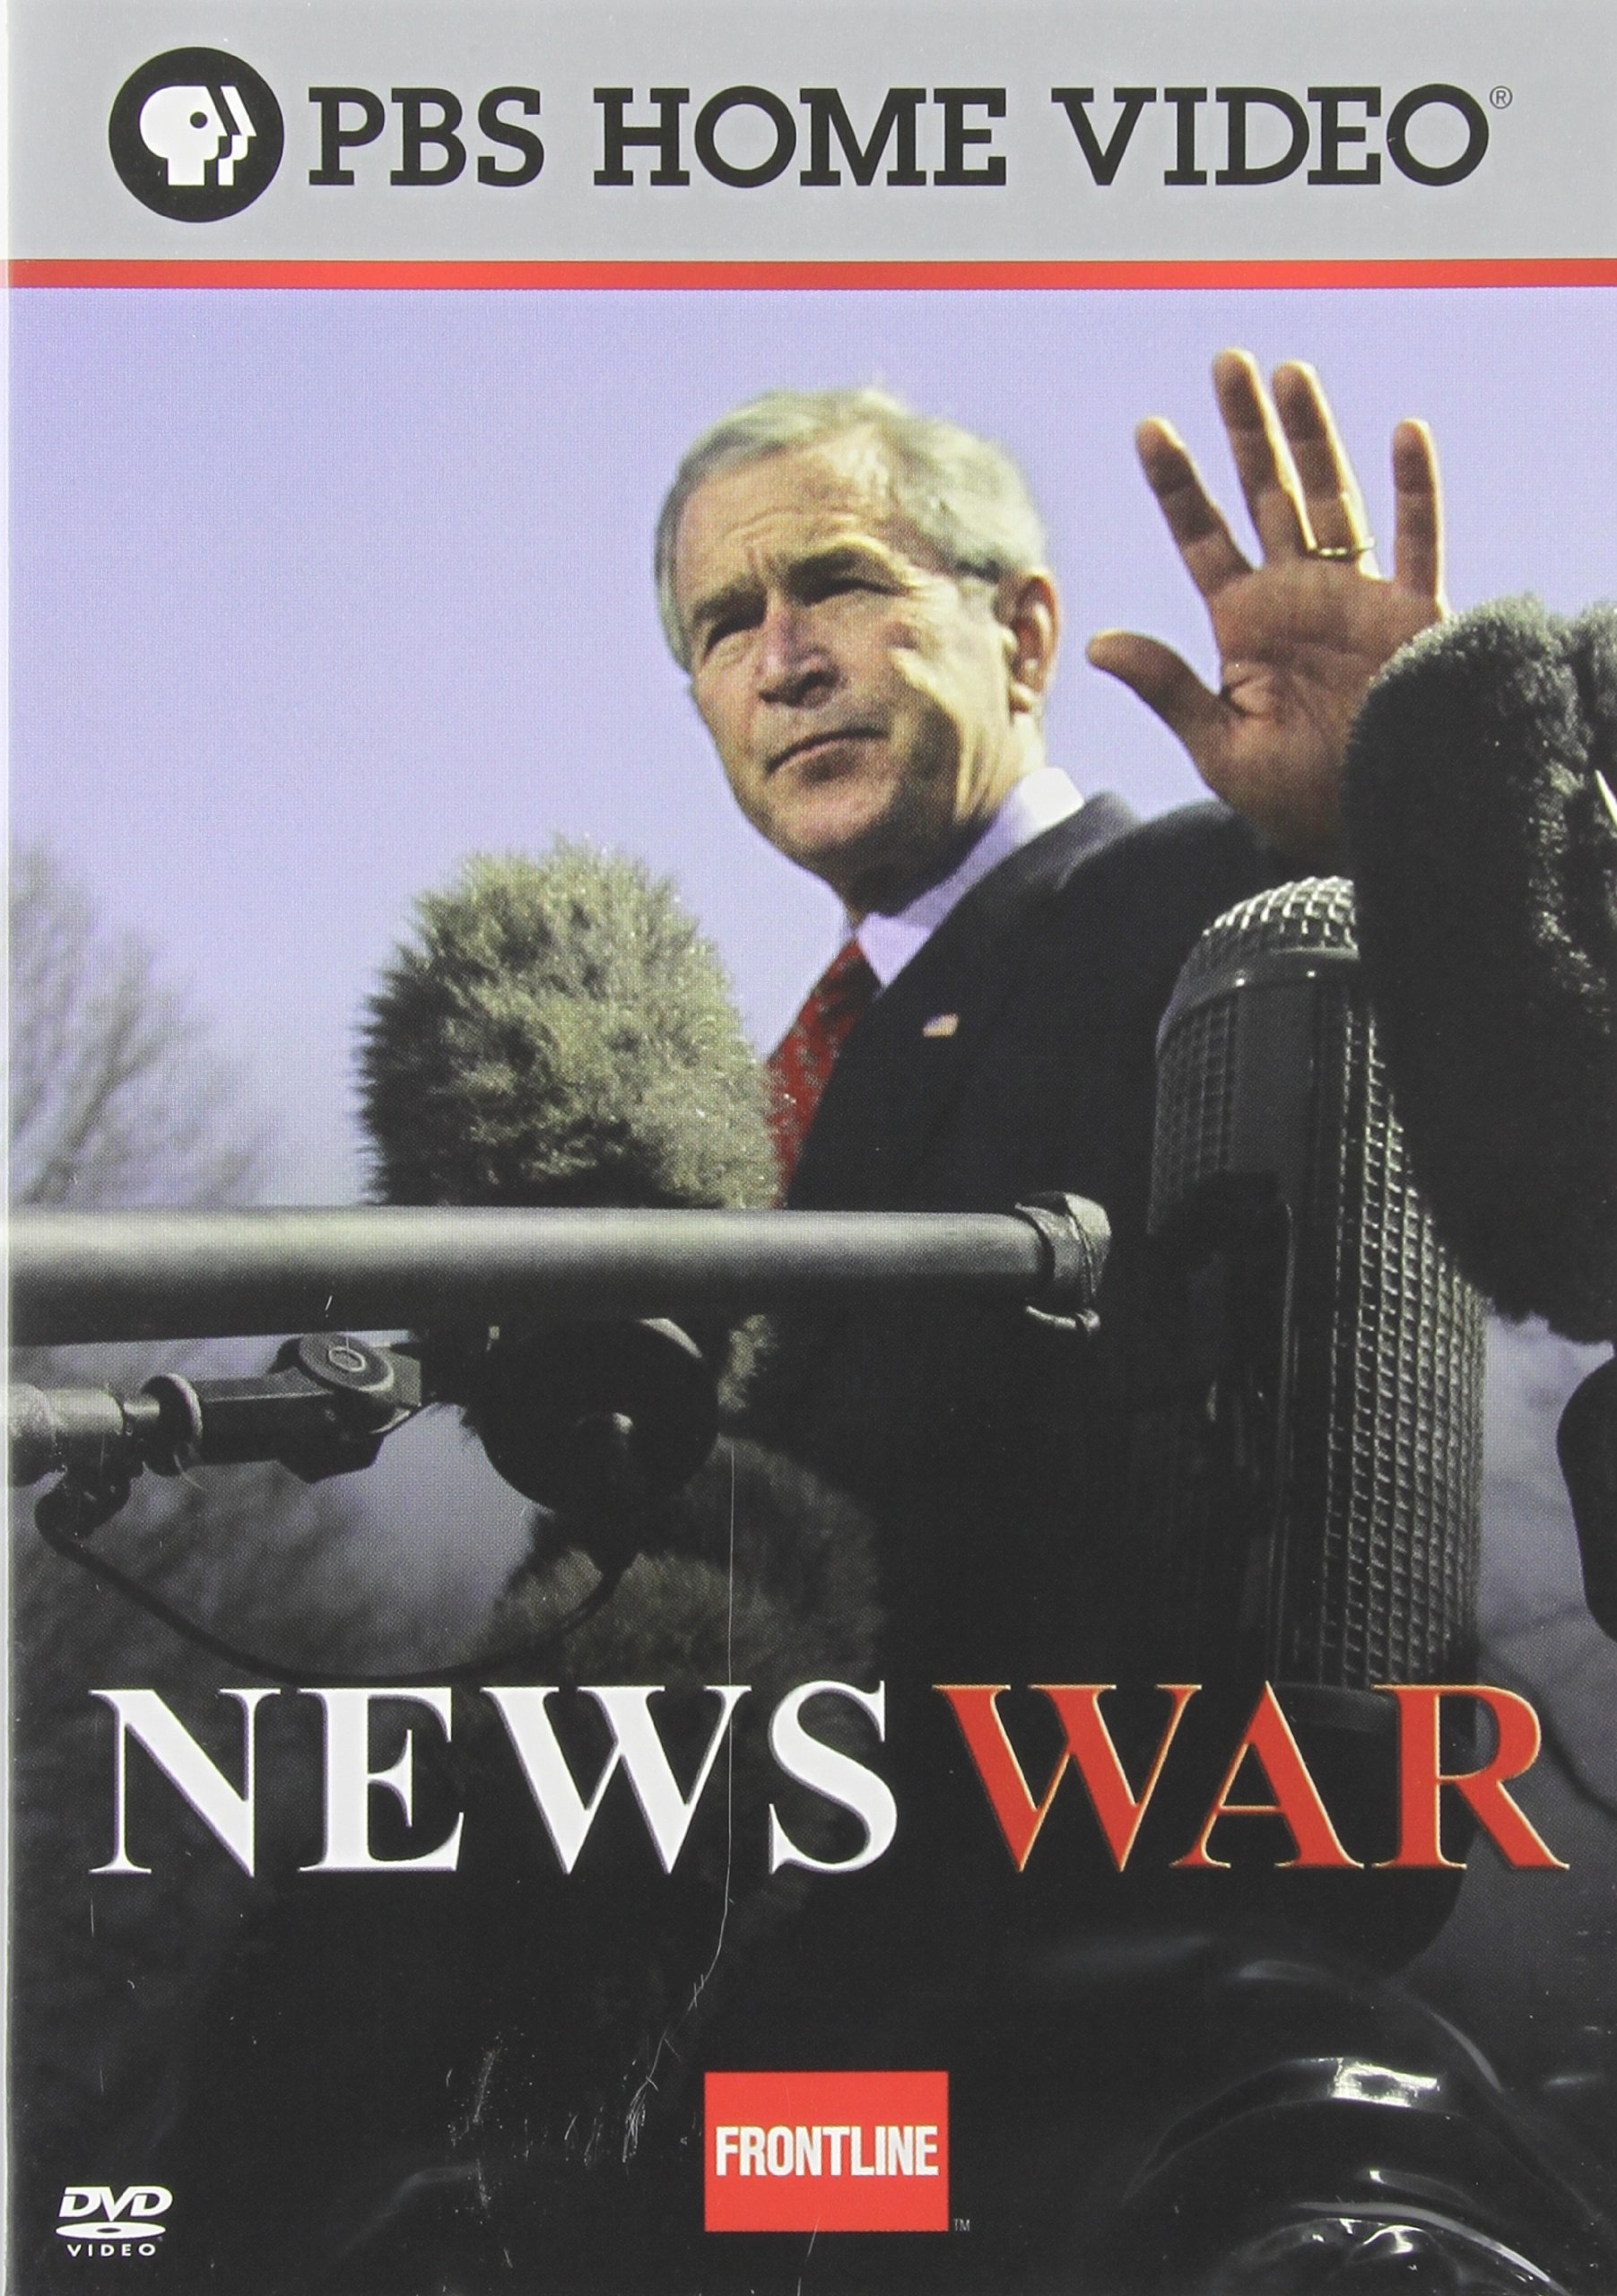 Frontline - News War by PBS